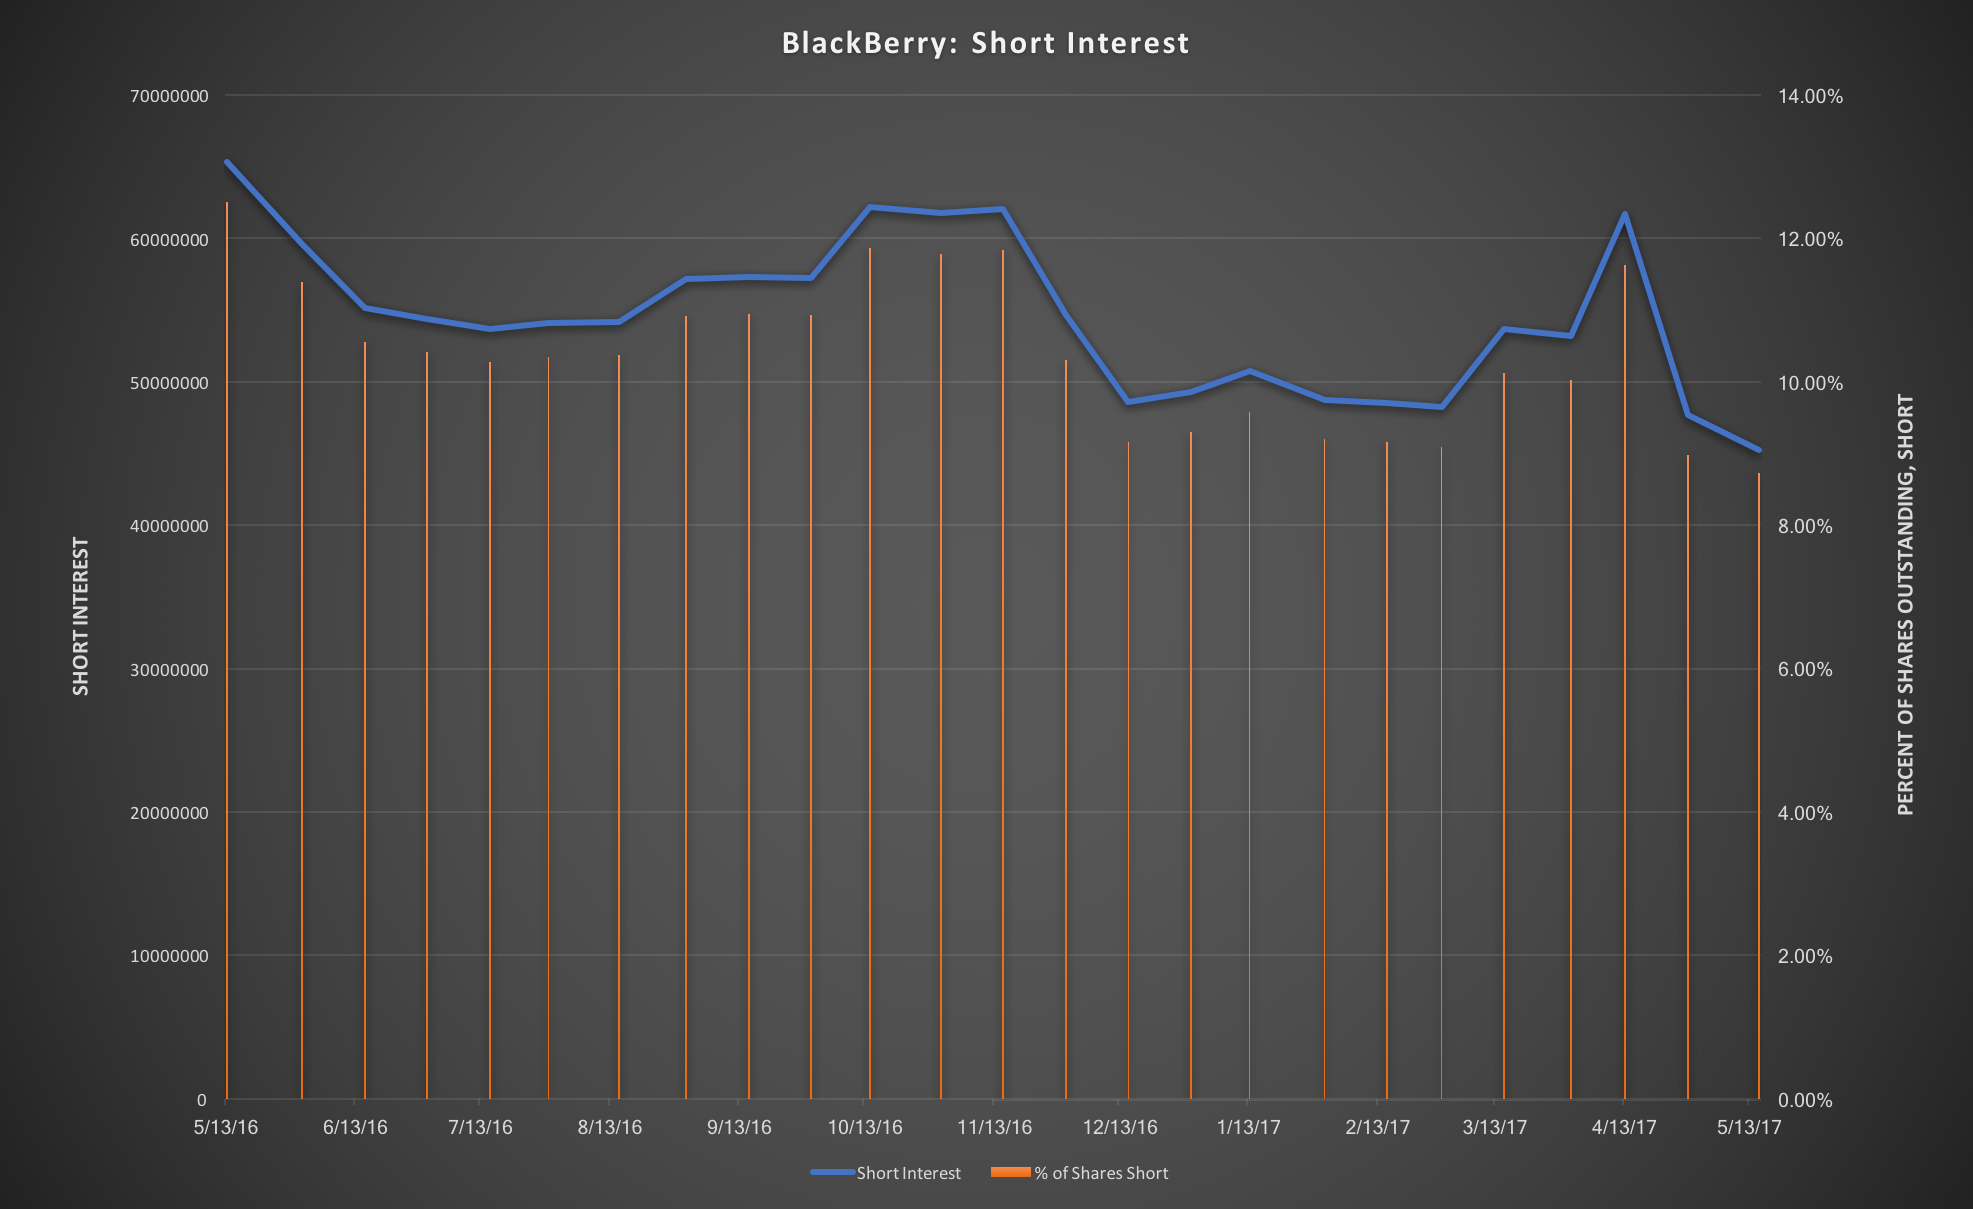 BlackBerry Ltd (BB) Director Acquires 7300 Shares of Stock